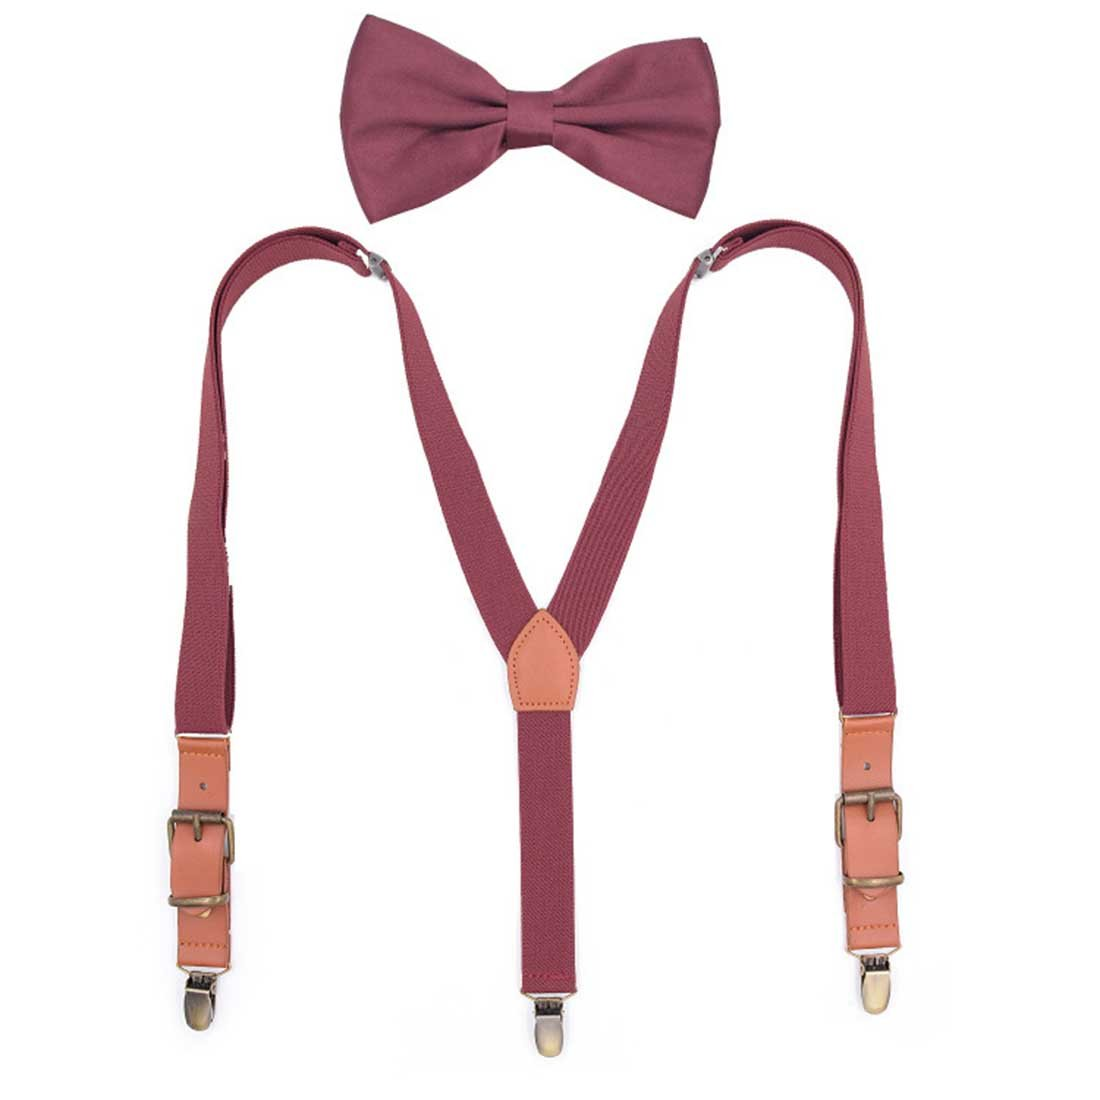 Romanlin Suspenders and Bow Tie Set for Kids Adjustable Elastic Y Back Suspender Outfits for Wedding Party (Burgandy)